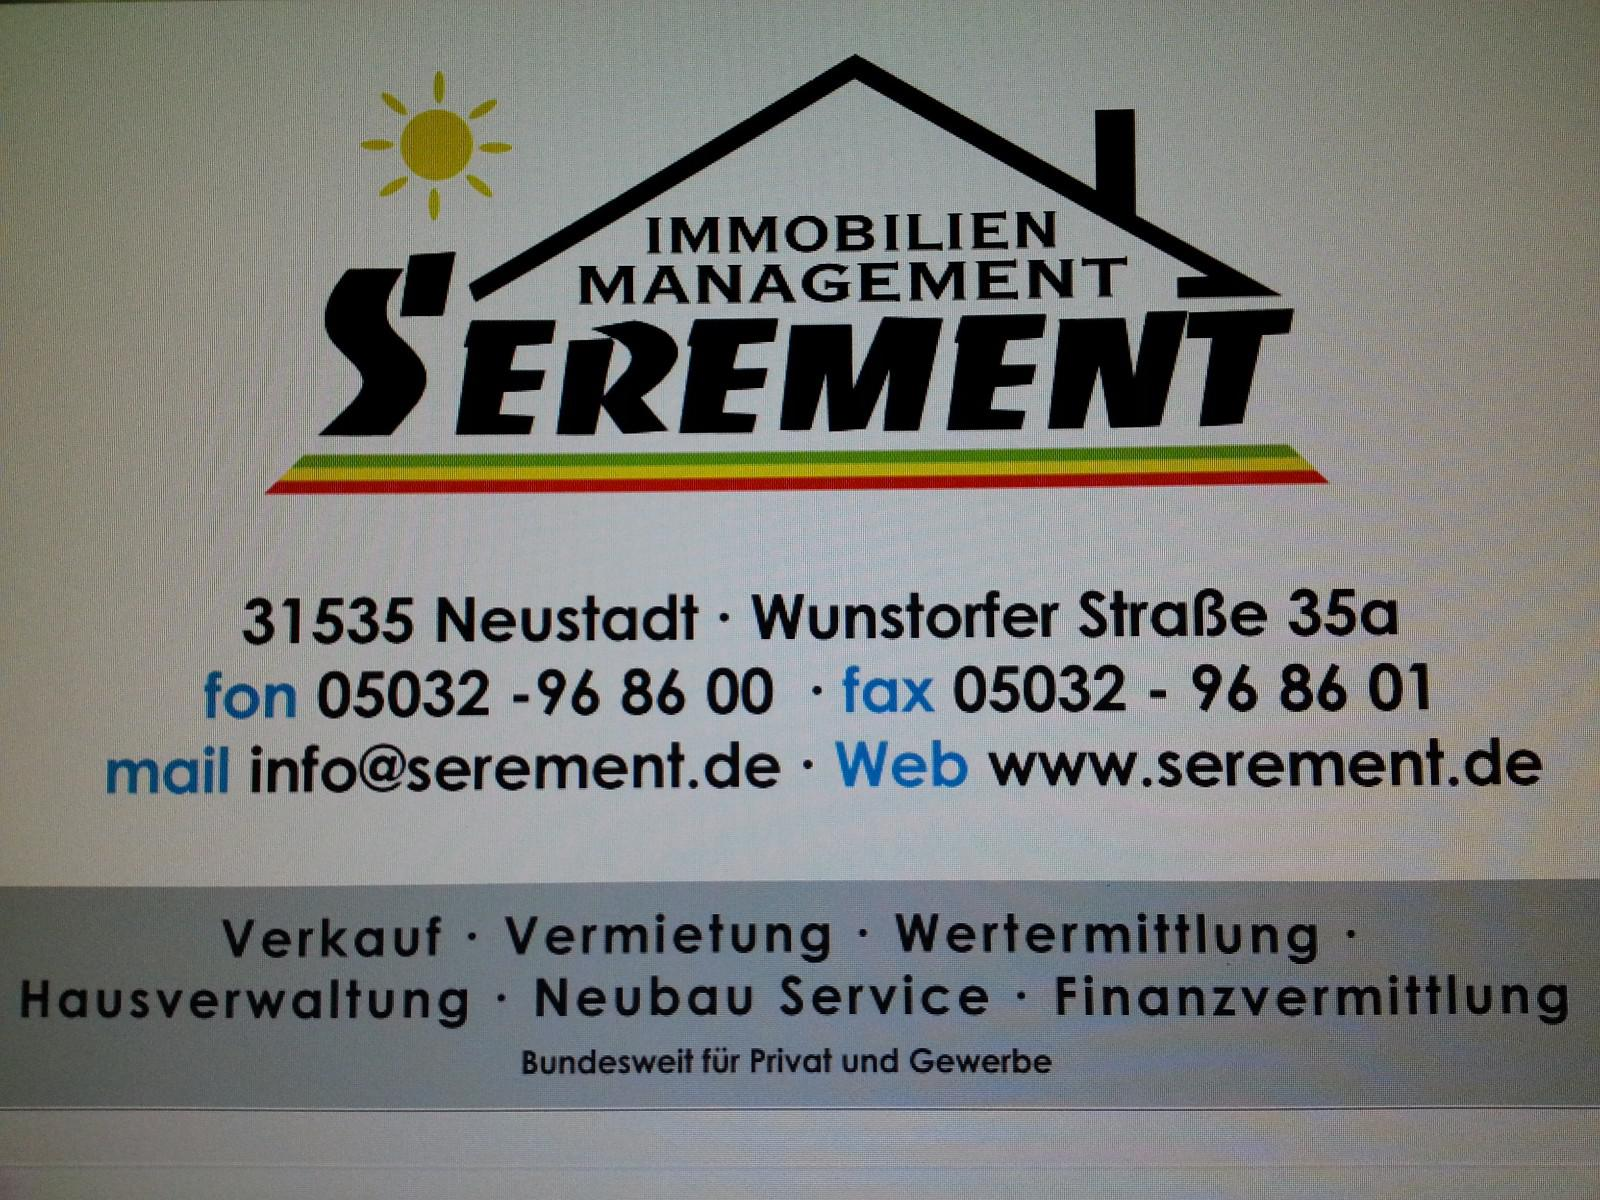 Unsere Immobilien